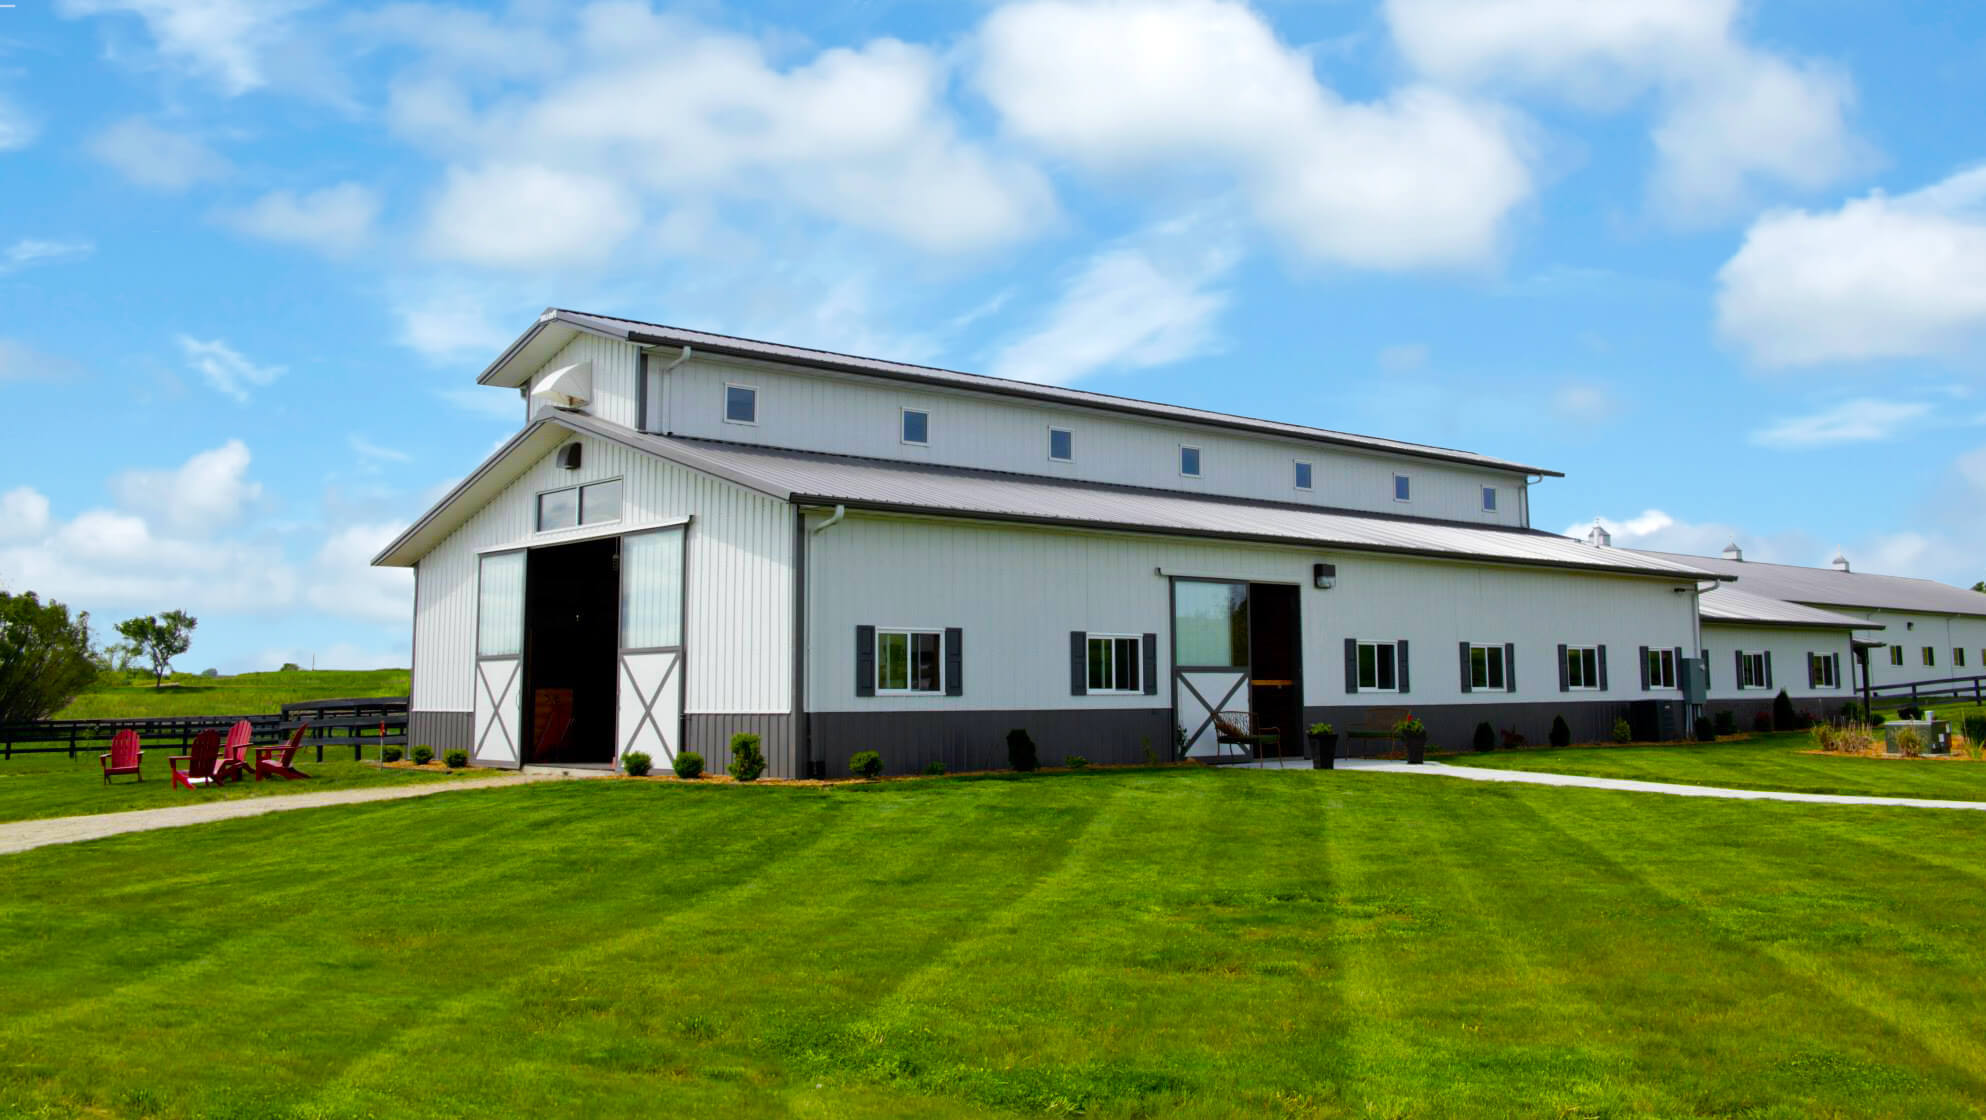 Agricultural steel building on a farm